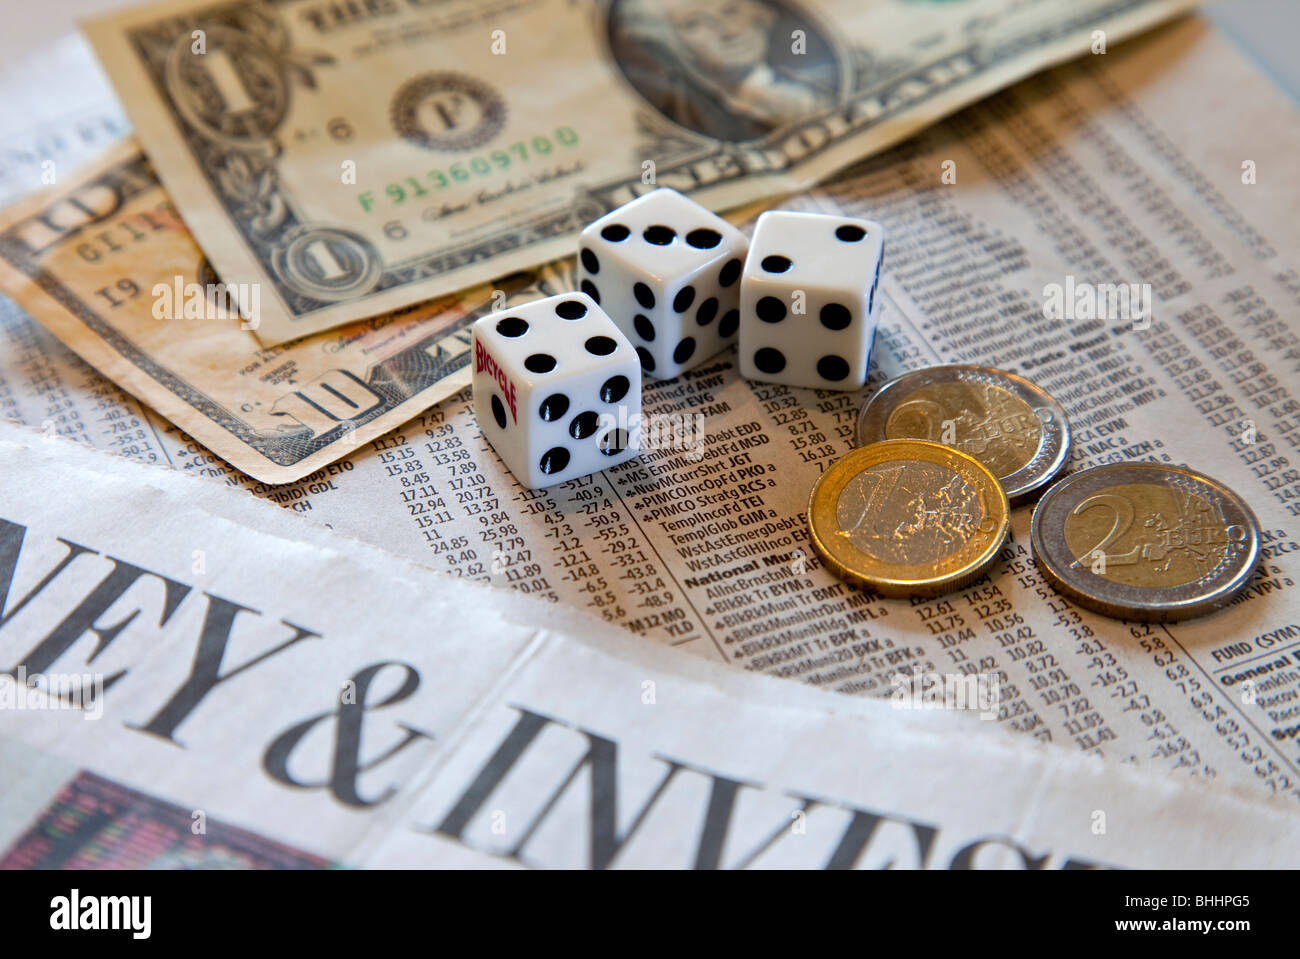 US dollars, Euro coins, dice and investment paper - Stock Image